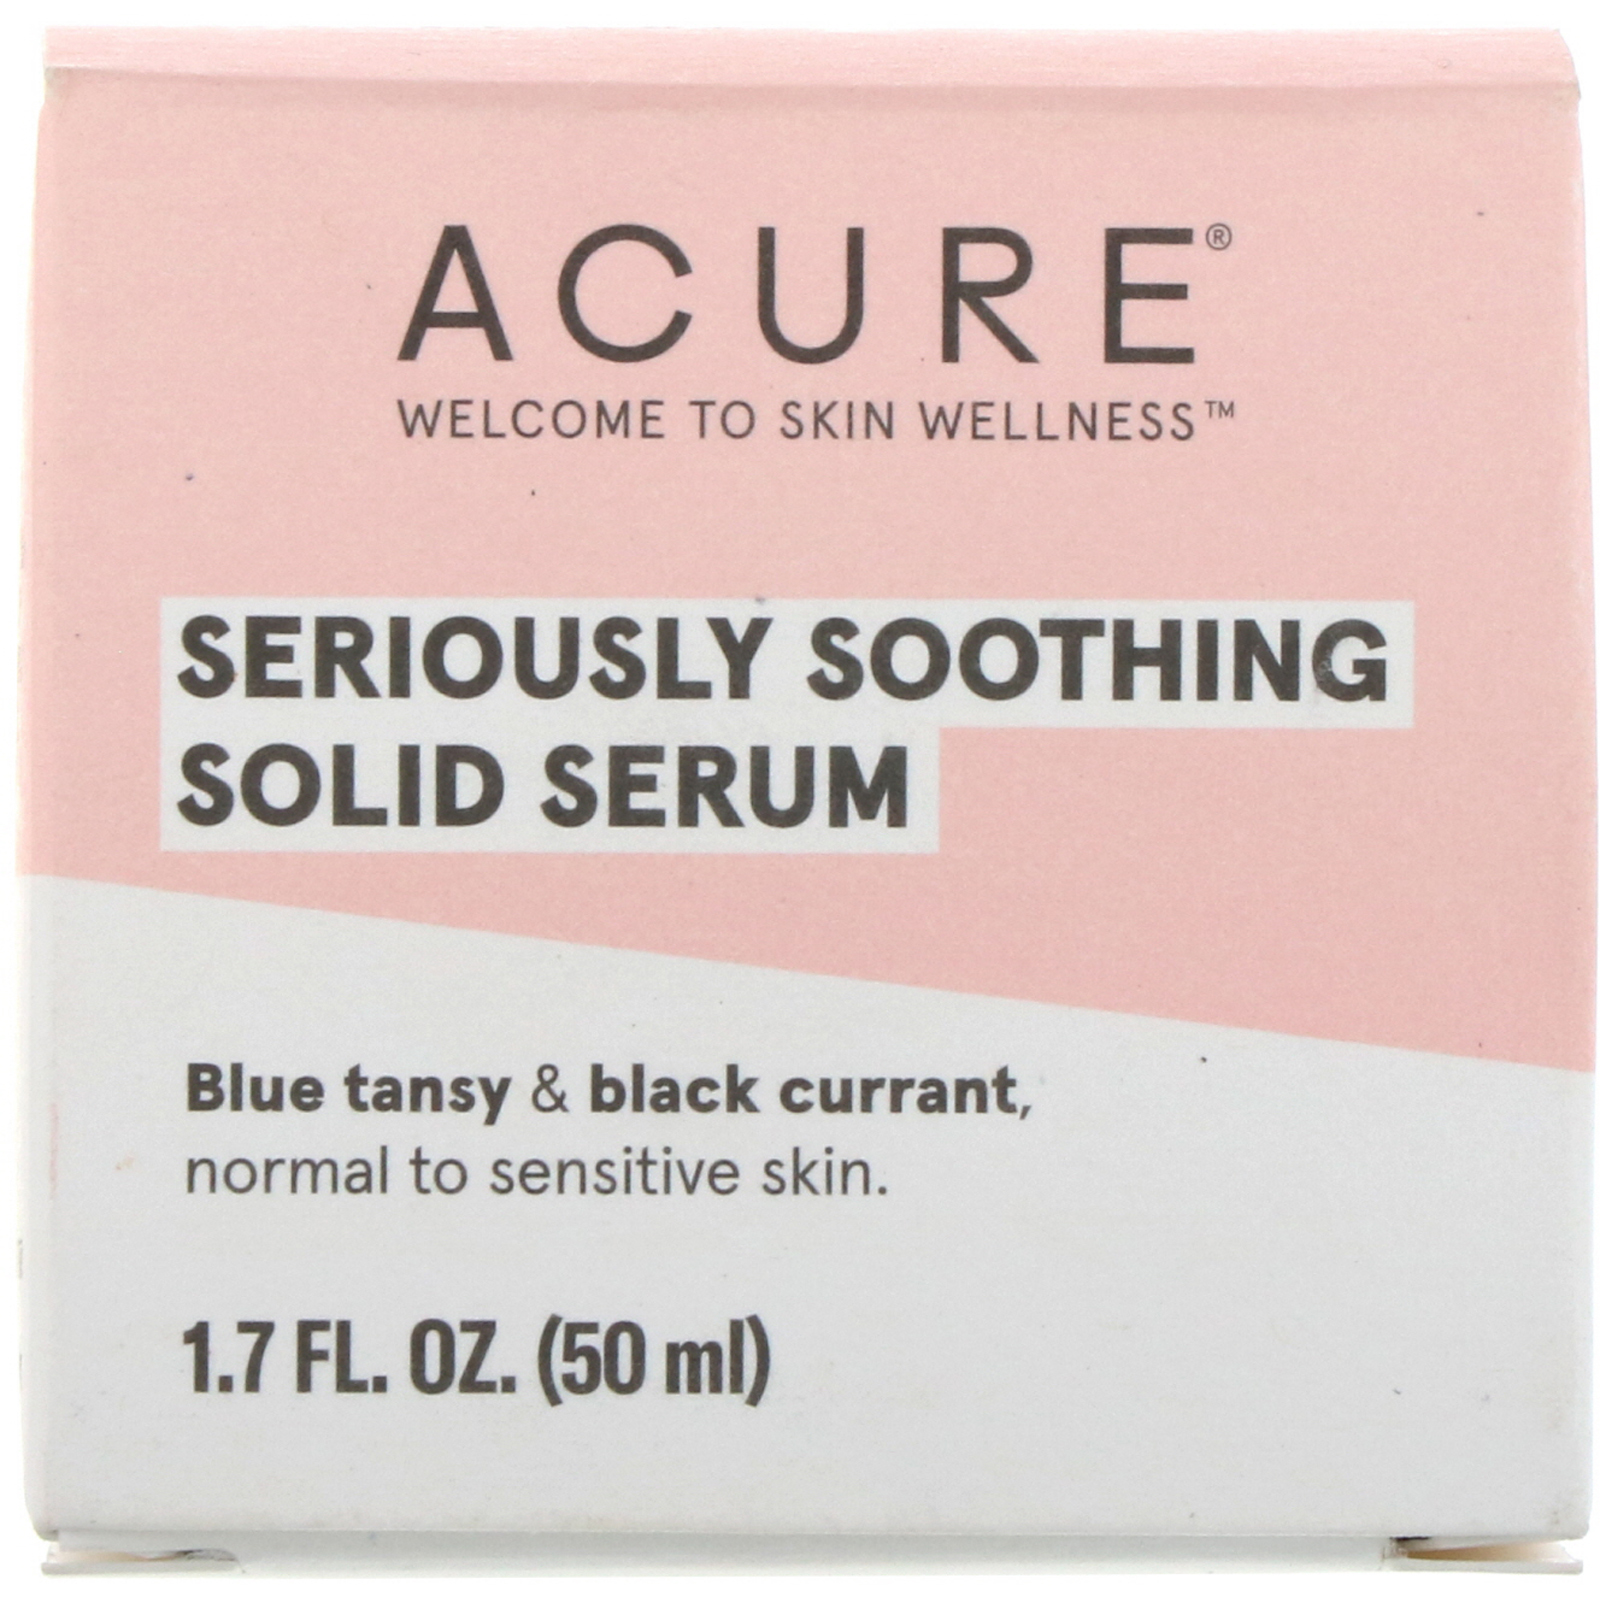 Acure Seriously Soothing Solid Serum 1 7 Fl Oz 50 Ml